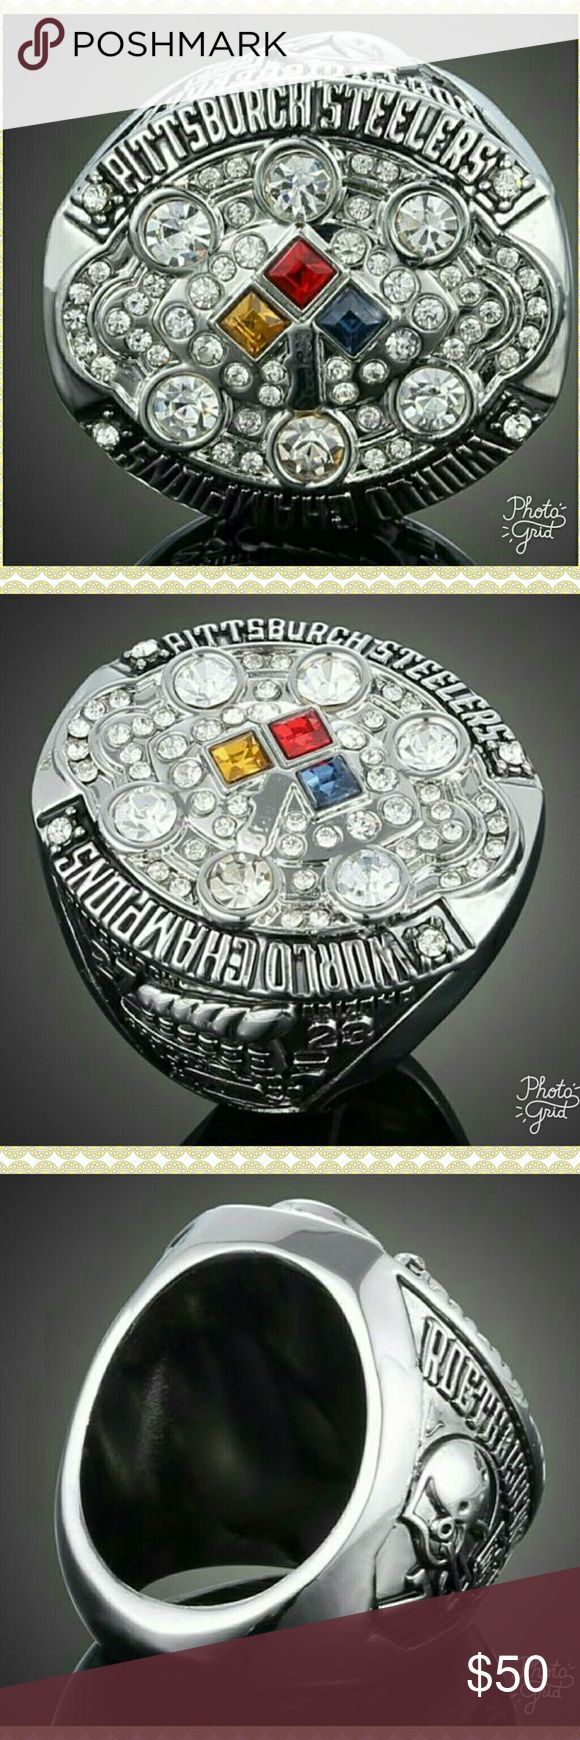 🆕 🏈 NFL SUPER BOWL RING 🏈 2008 NFL PITTSBURGH STEELERS RING. 🏈 Accessories Jewelry